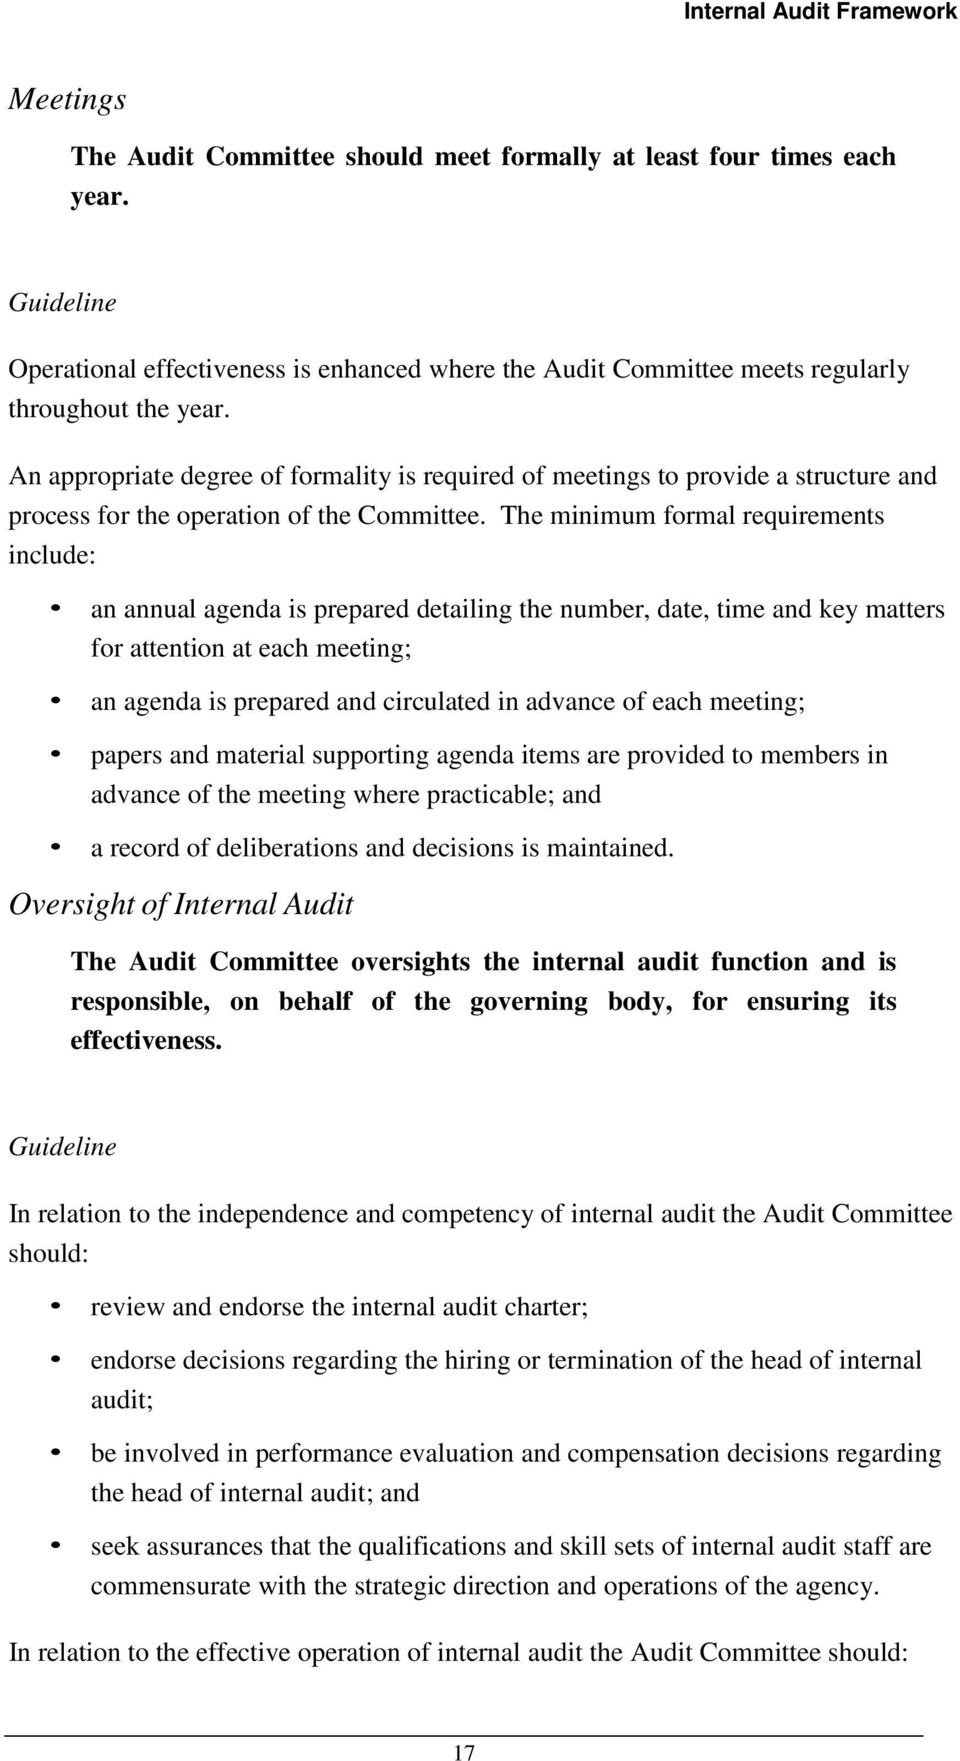 The minimum formal requirements include: an annual agenda is prepared detailing the number, date, time and key matters for attention at each meeting; an agenda is prepared and circulated in advance